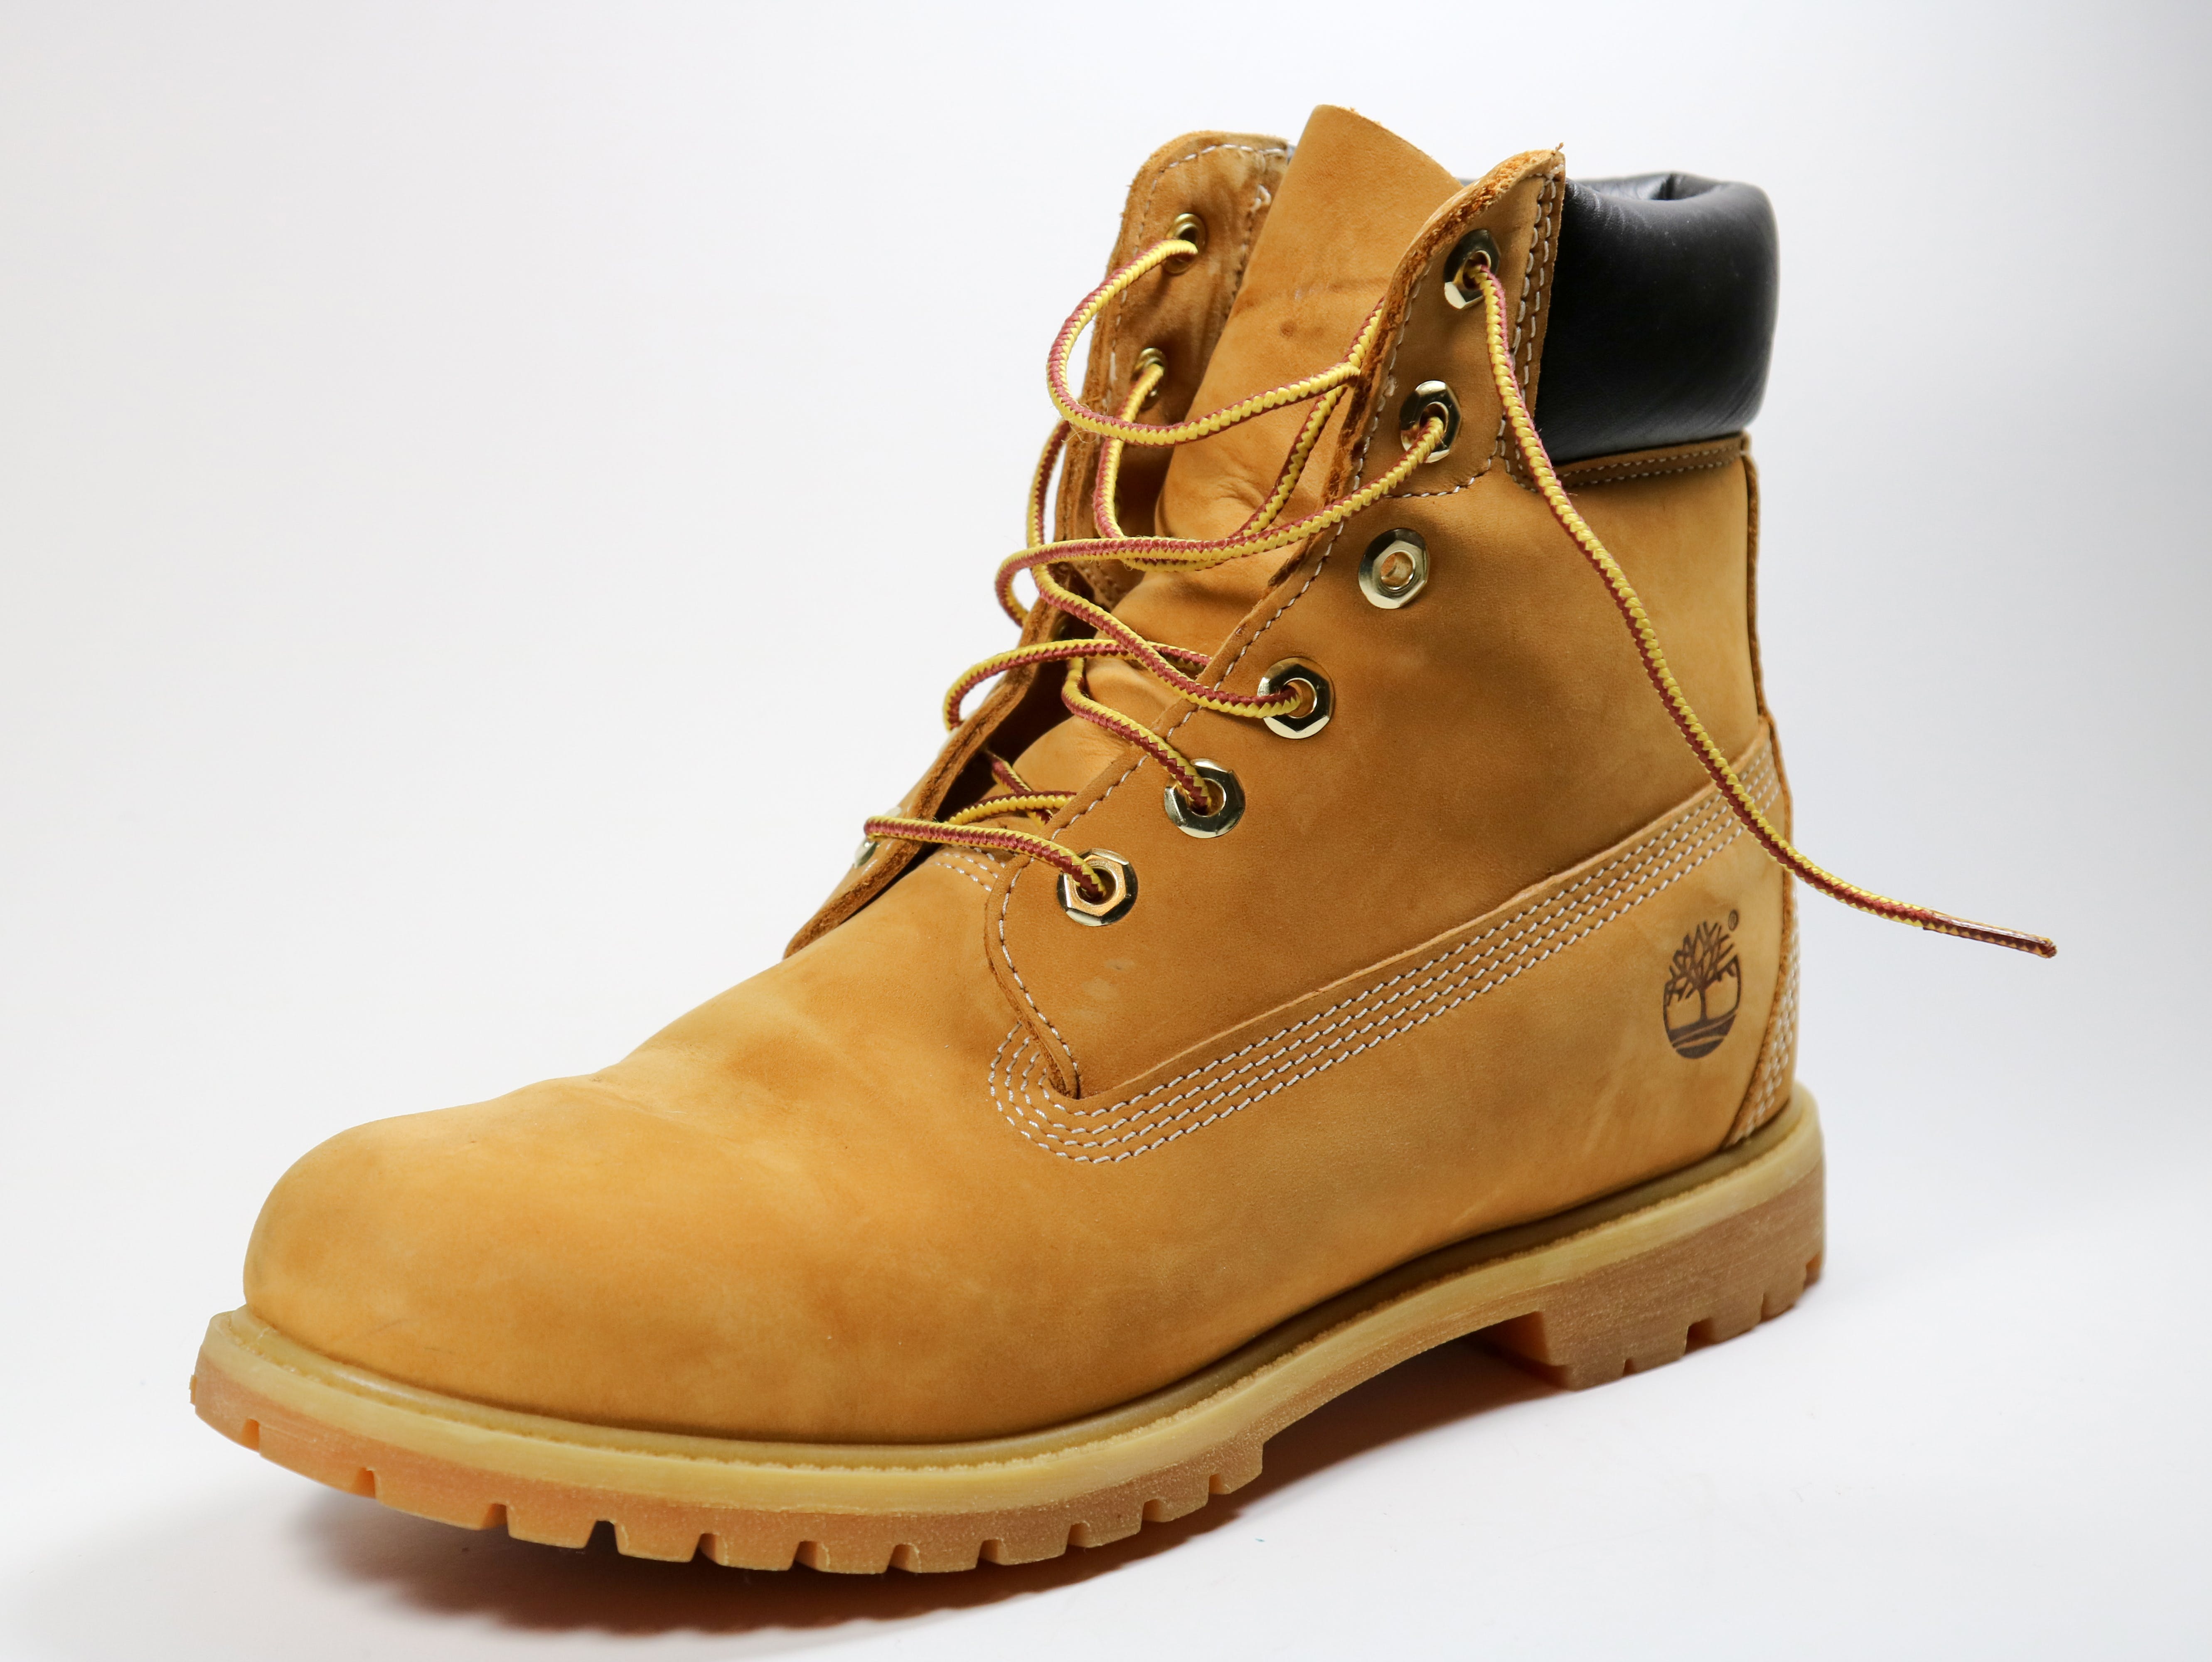 Free stock photo of boot, brown, clean, light